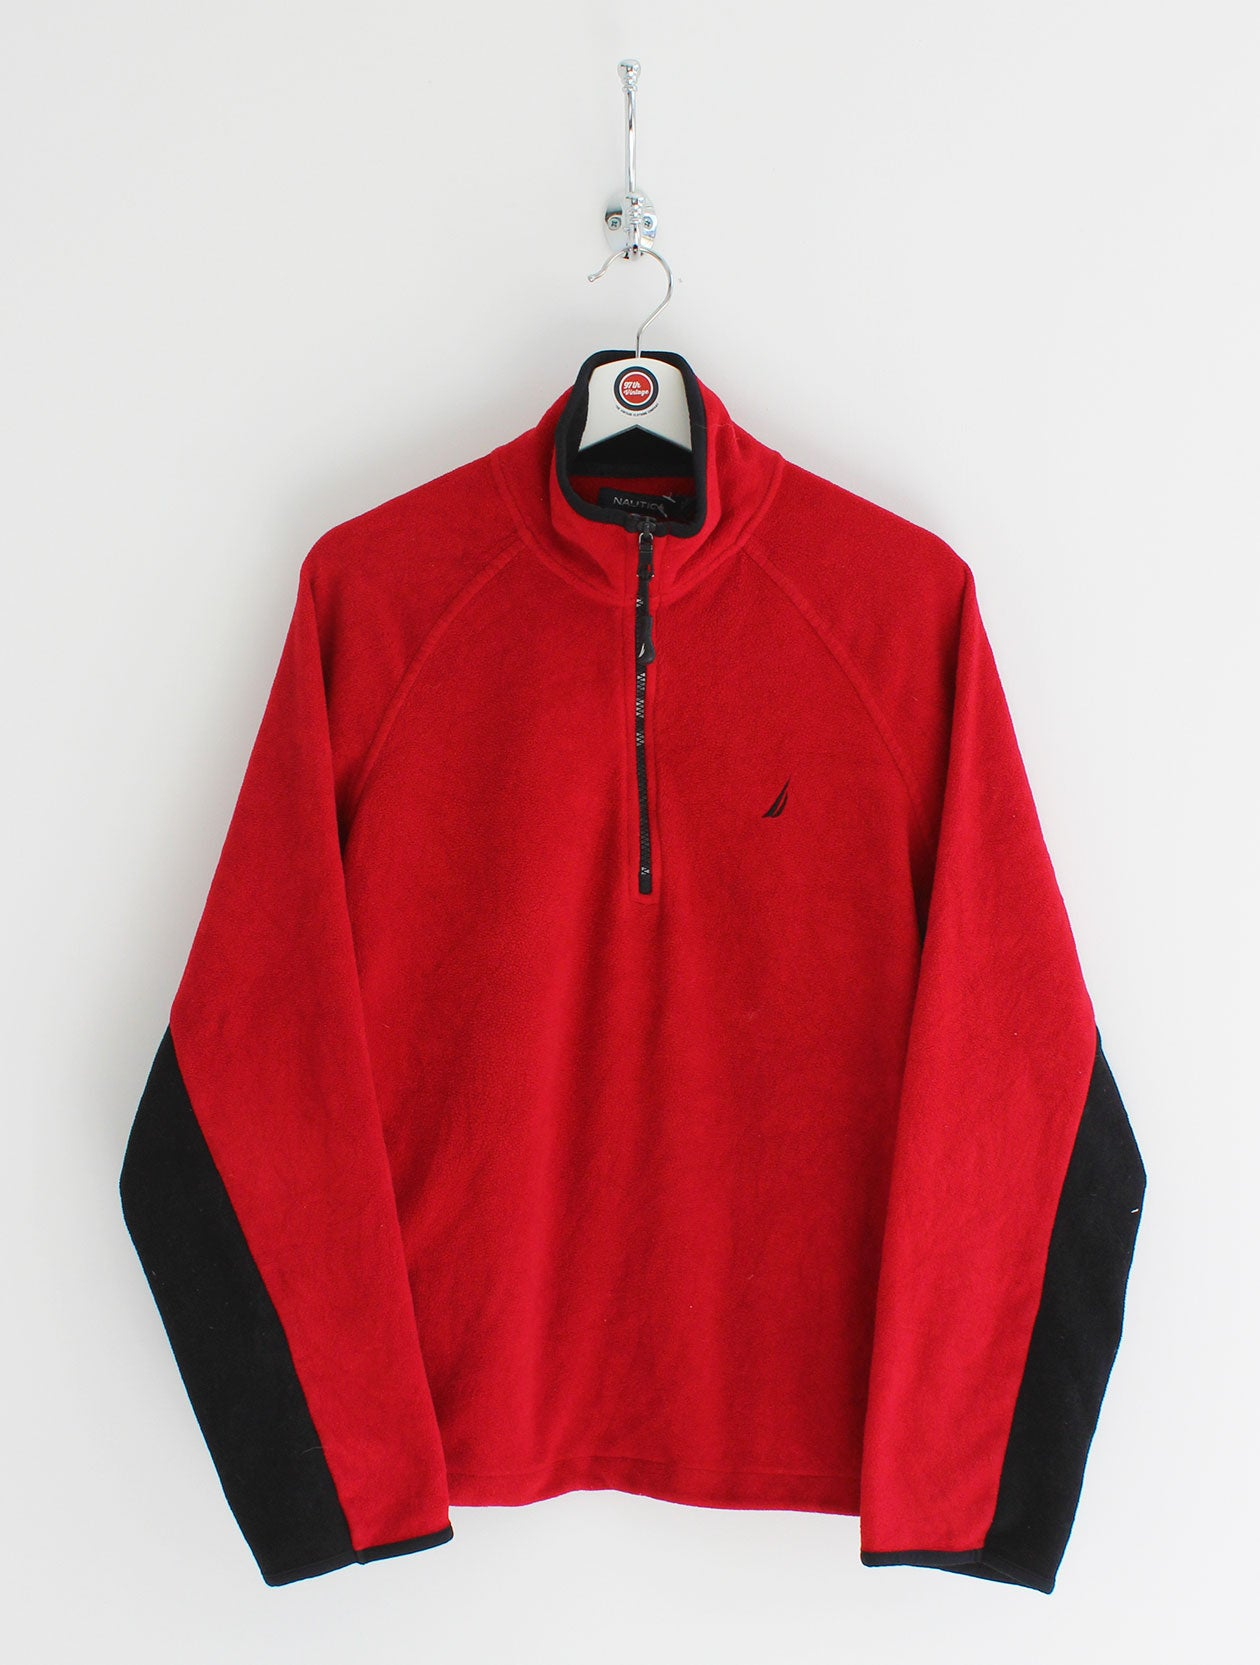 Nautica Fleece (M)